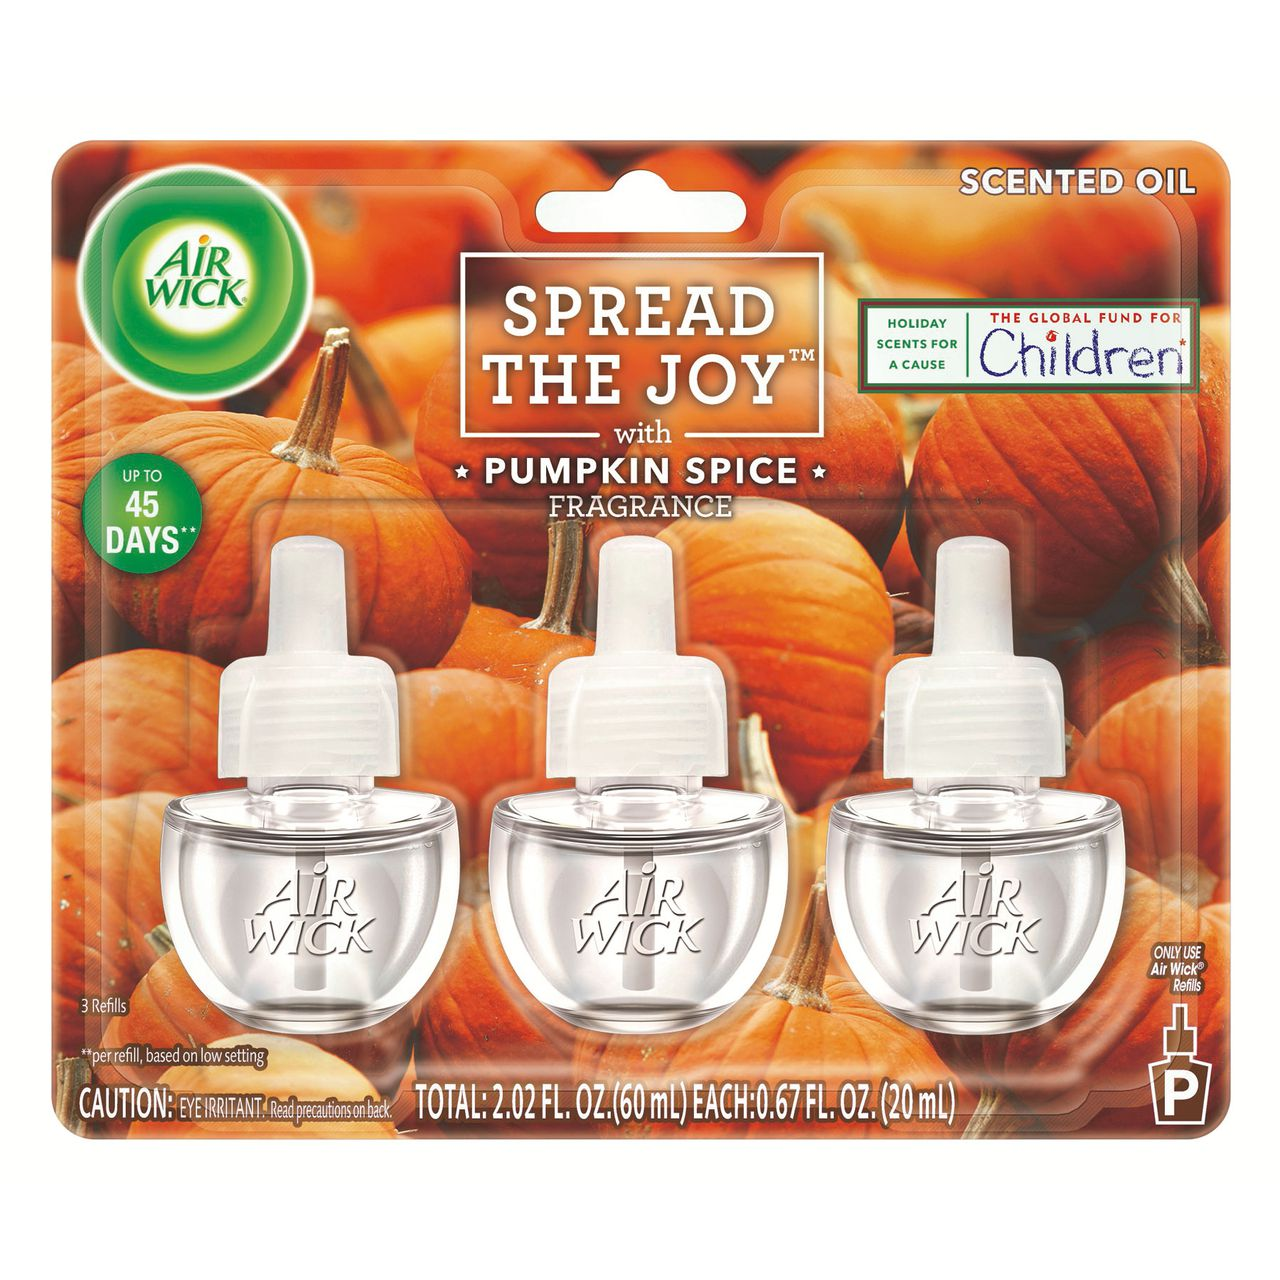 Spread The Joy Pumpkin Spice Scented Oil Triple